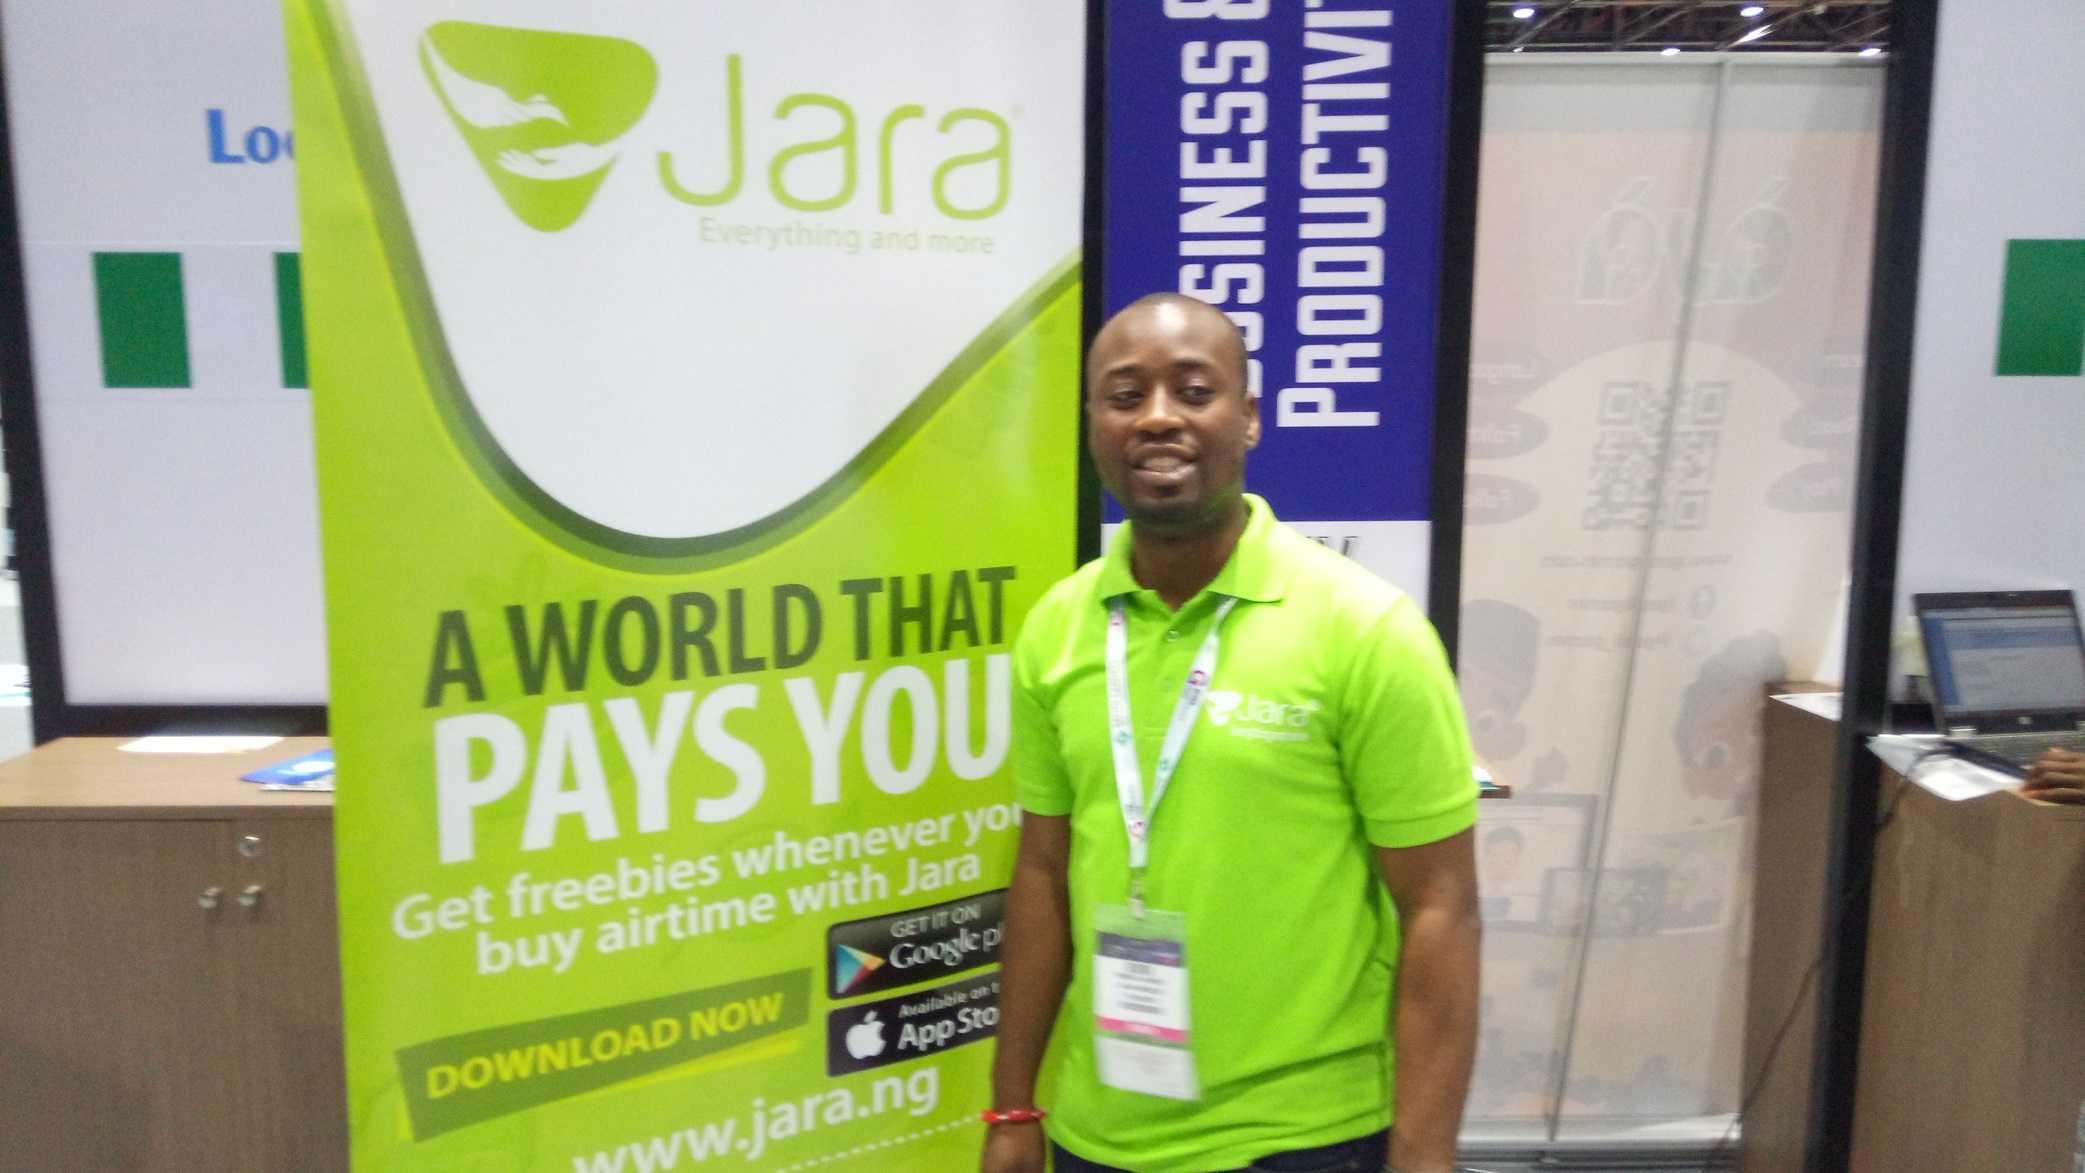 GITEX: Jara Mobile Limited Boss Speaks About Doing Business as a Nigerian Startup